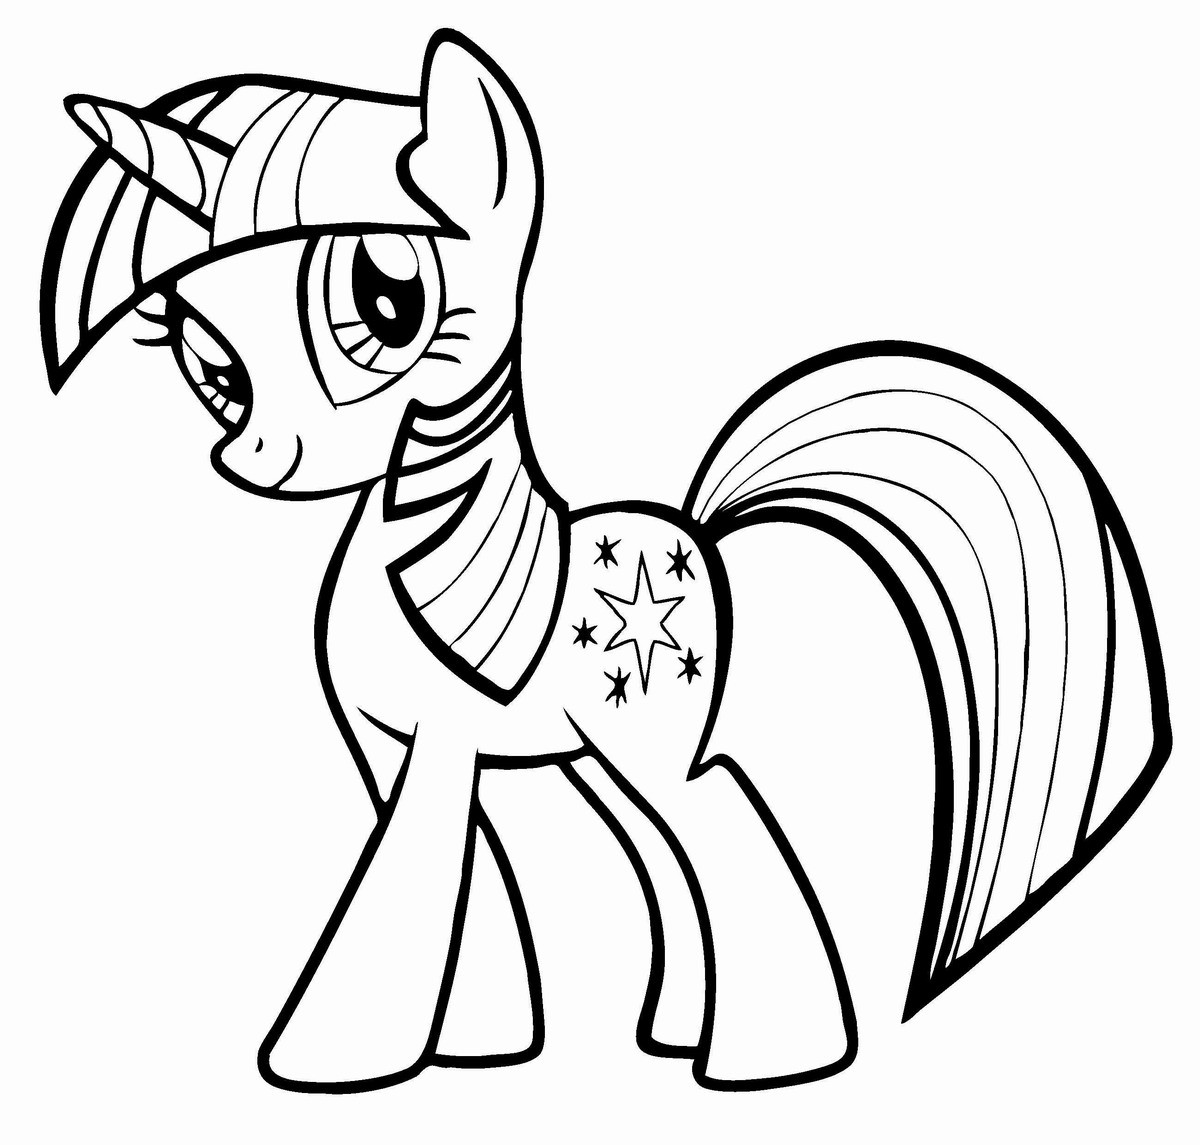 Best ideas about Pony Printable Coloring Pages . Save or Pin My Little Pony Coloring Pages Now.